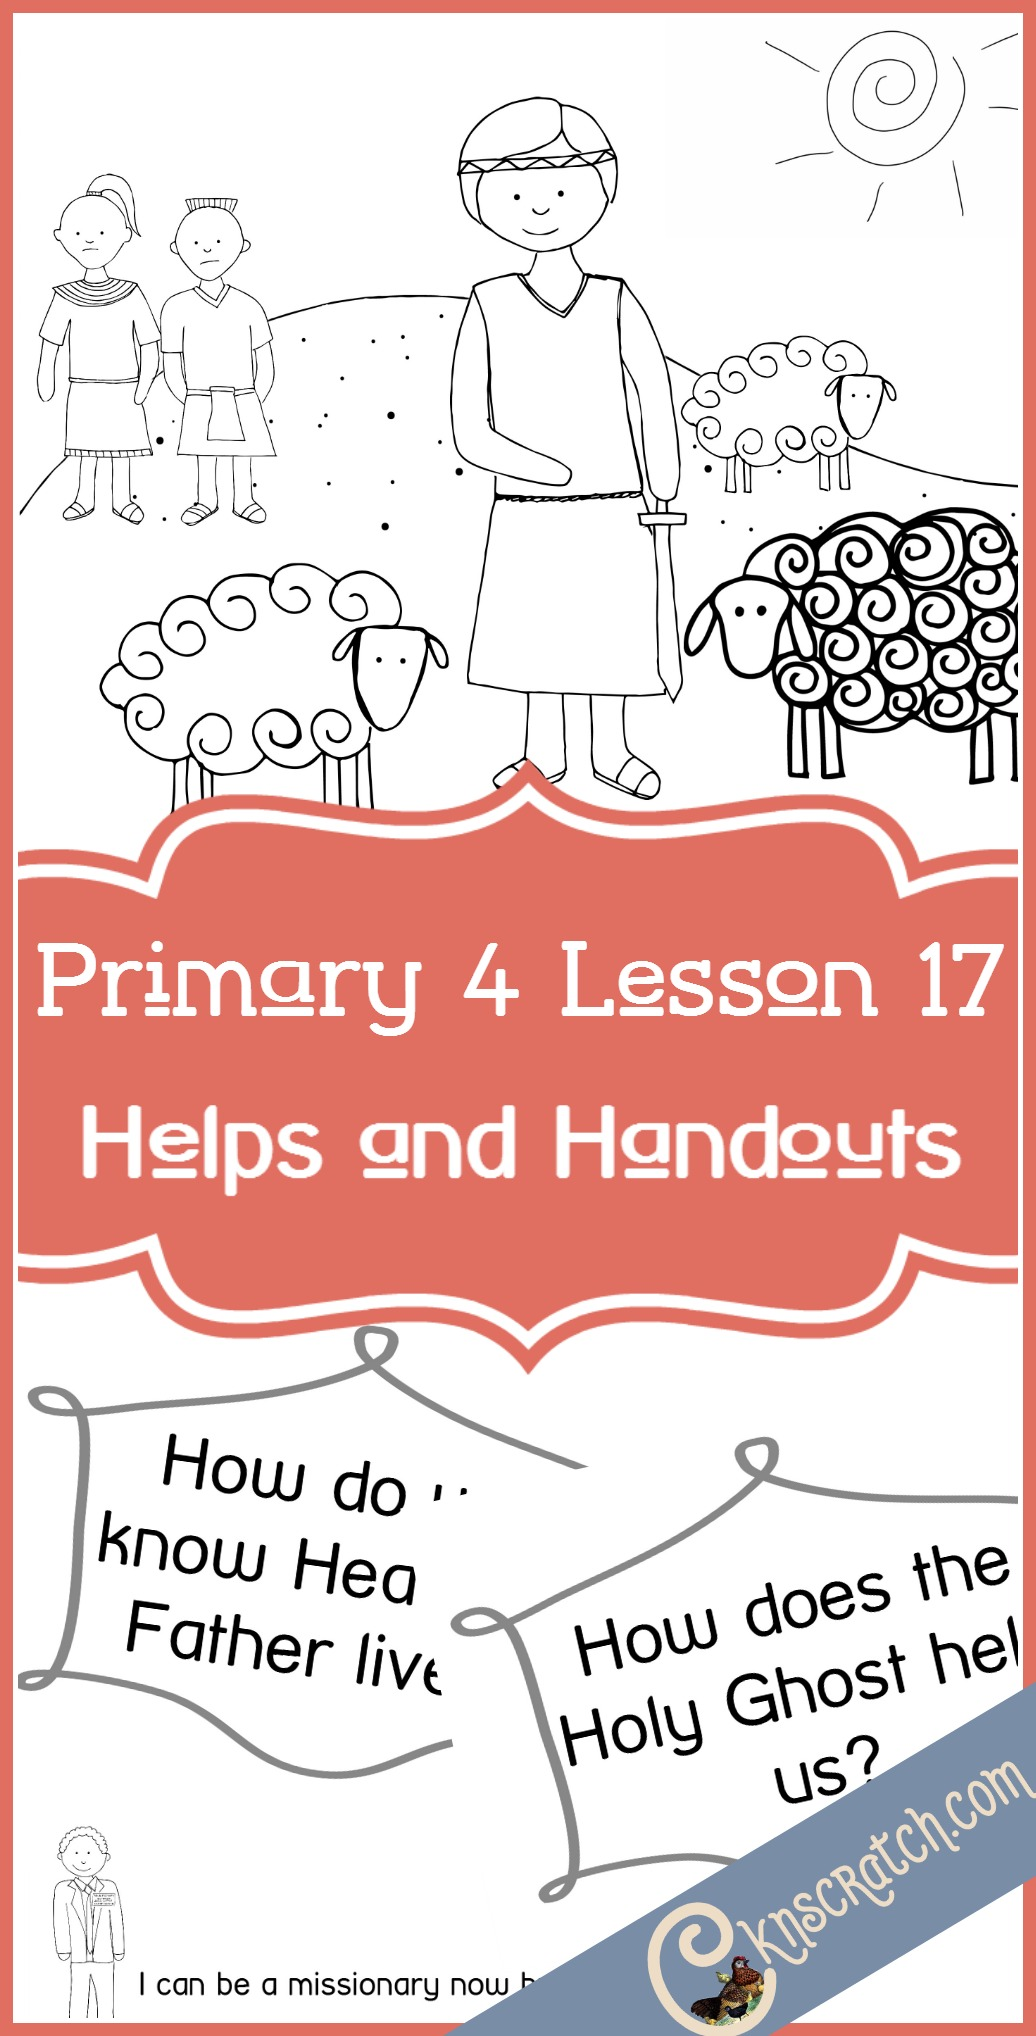 Awesome LDS handouts and helps for Primary 4 Lesson 17: Ammon, a great servant